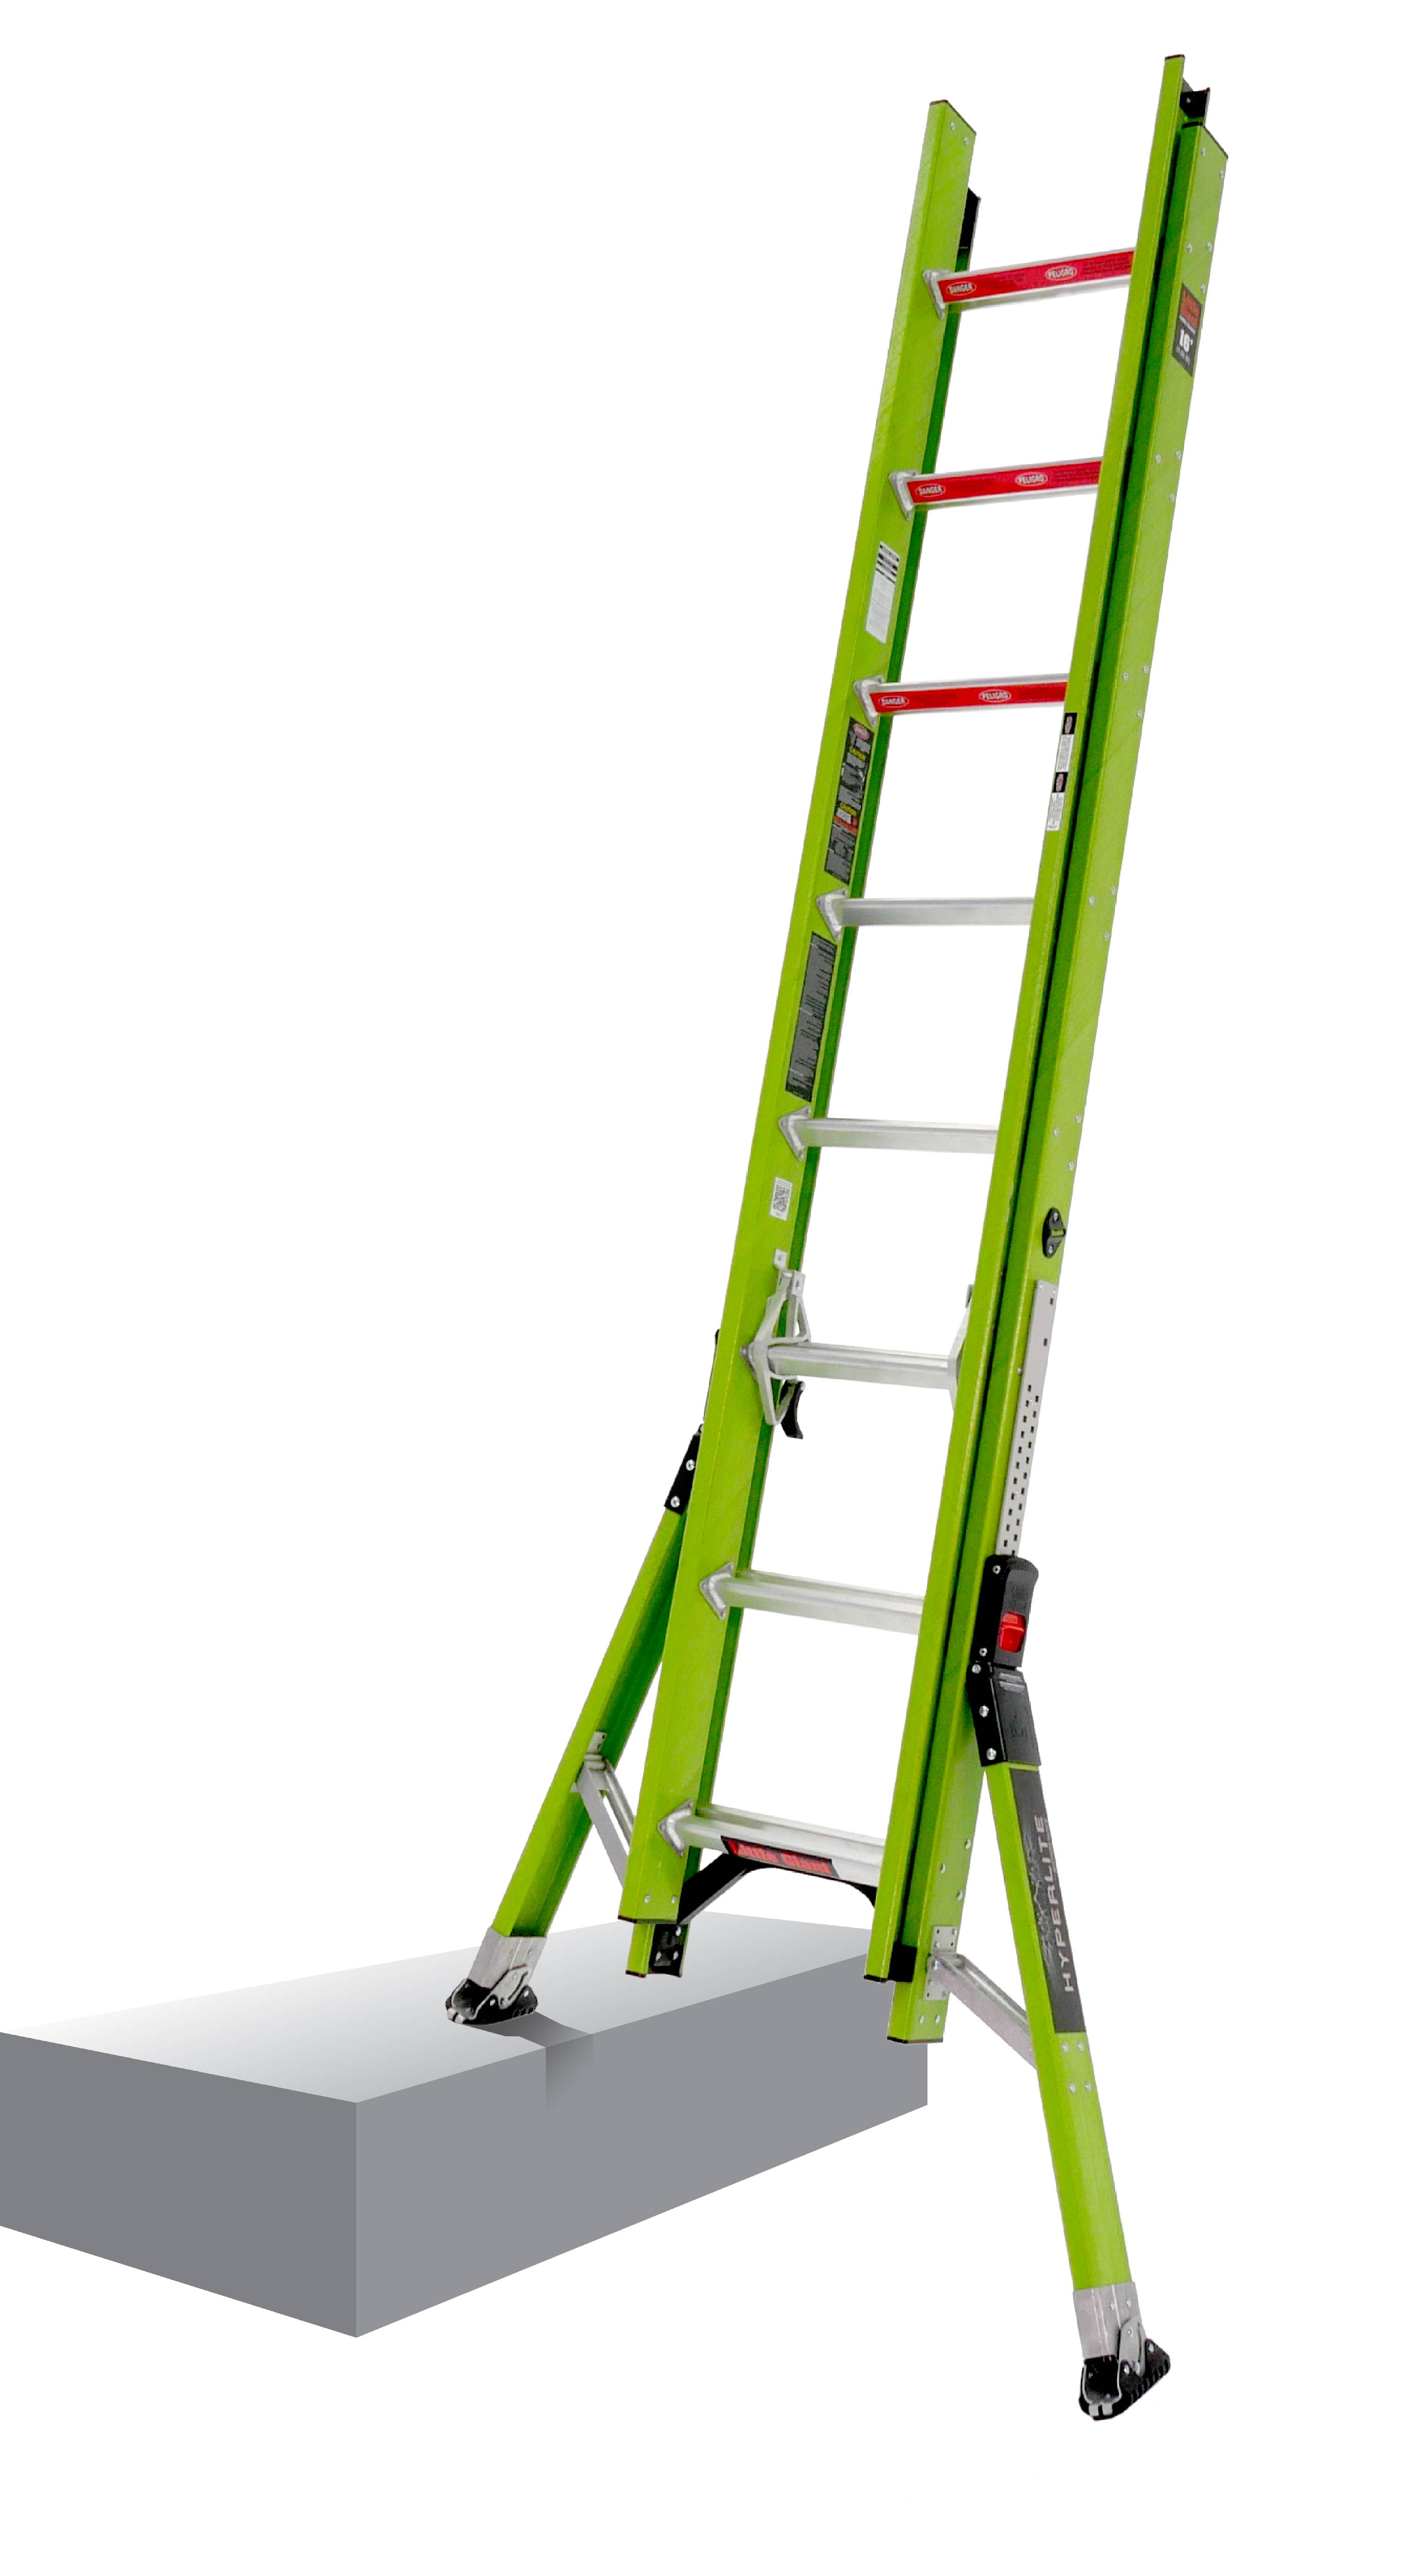 Little Giant HyperLite SumoStance, 16' Type IA 300 lbs rated, fiberglass extension ladder by Wing Enterprises, Inc.